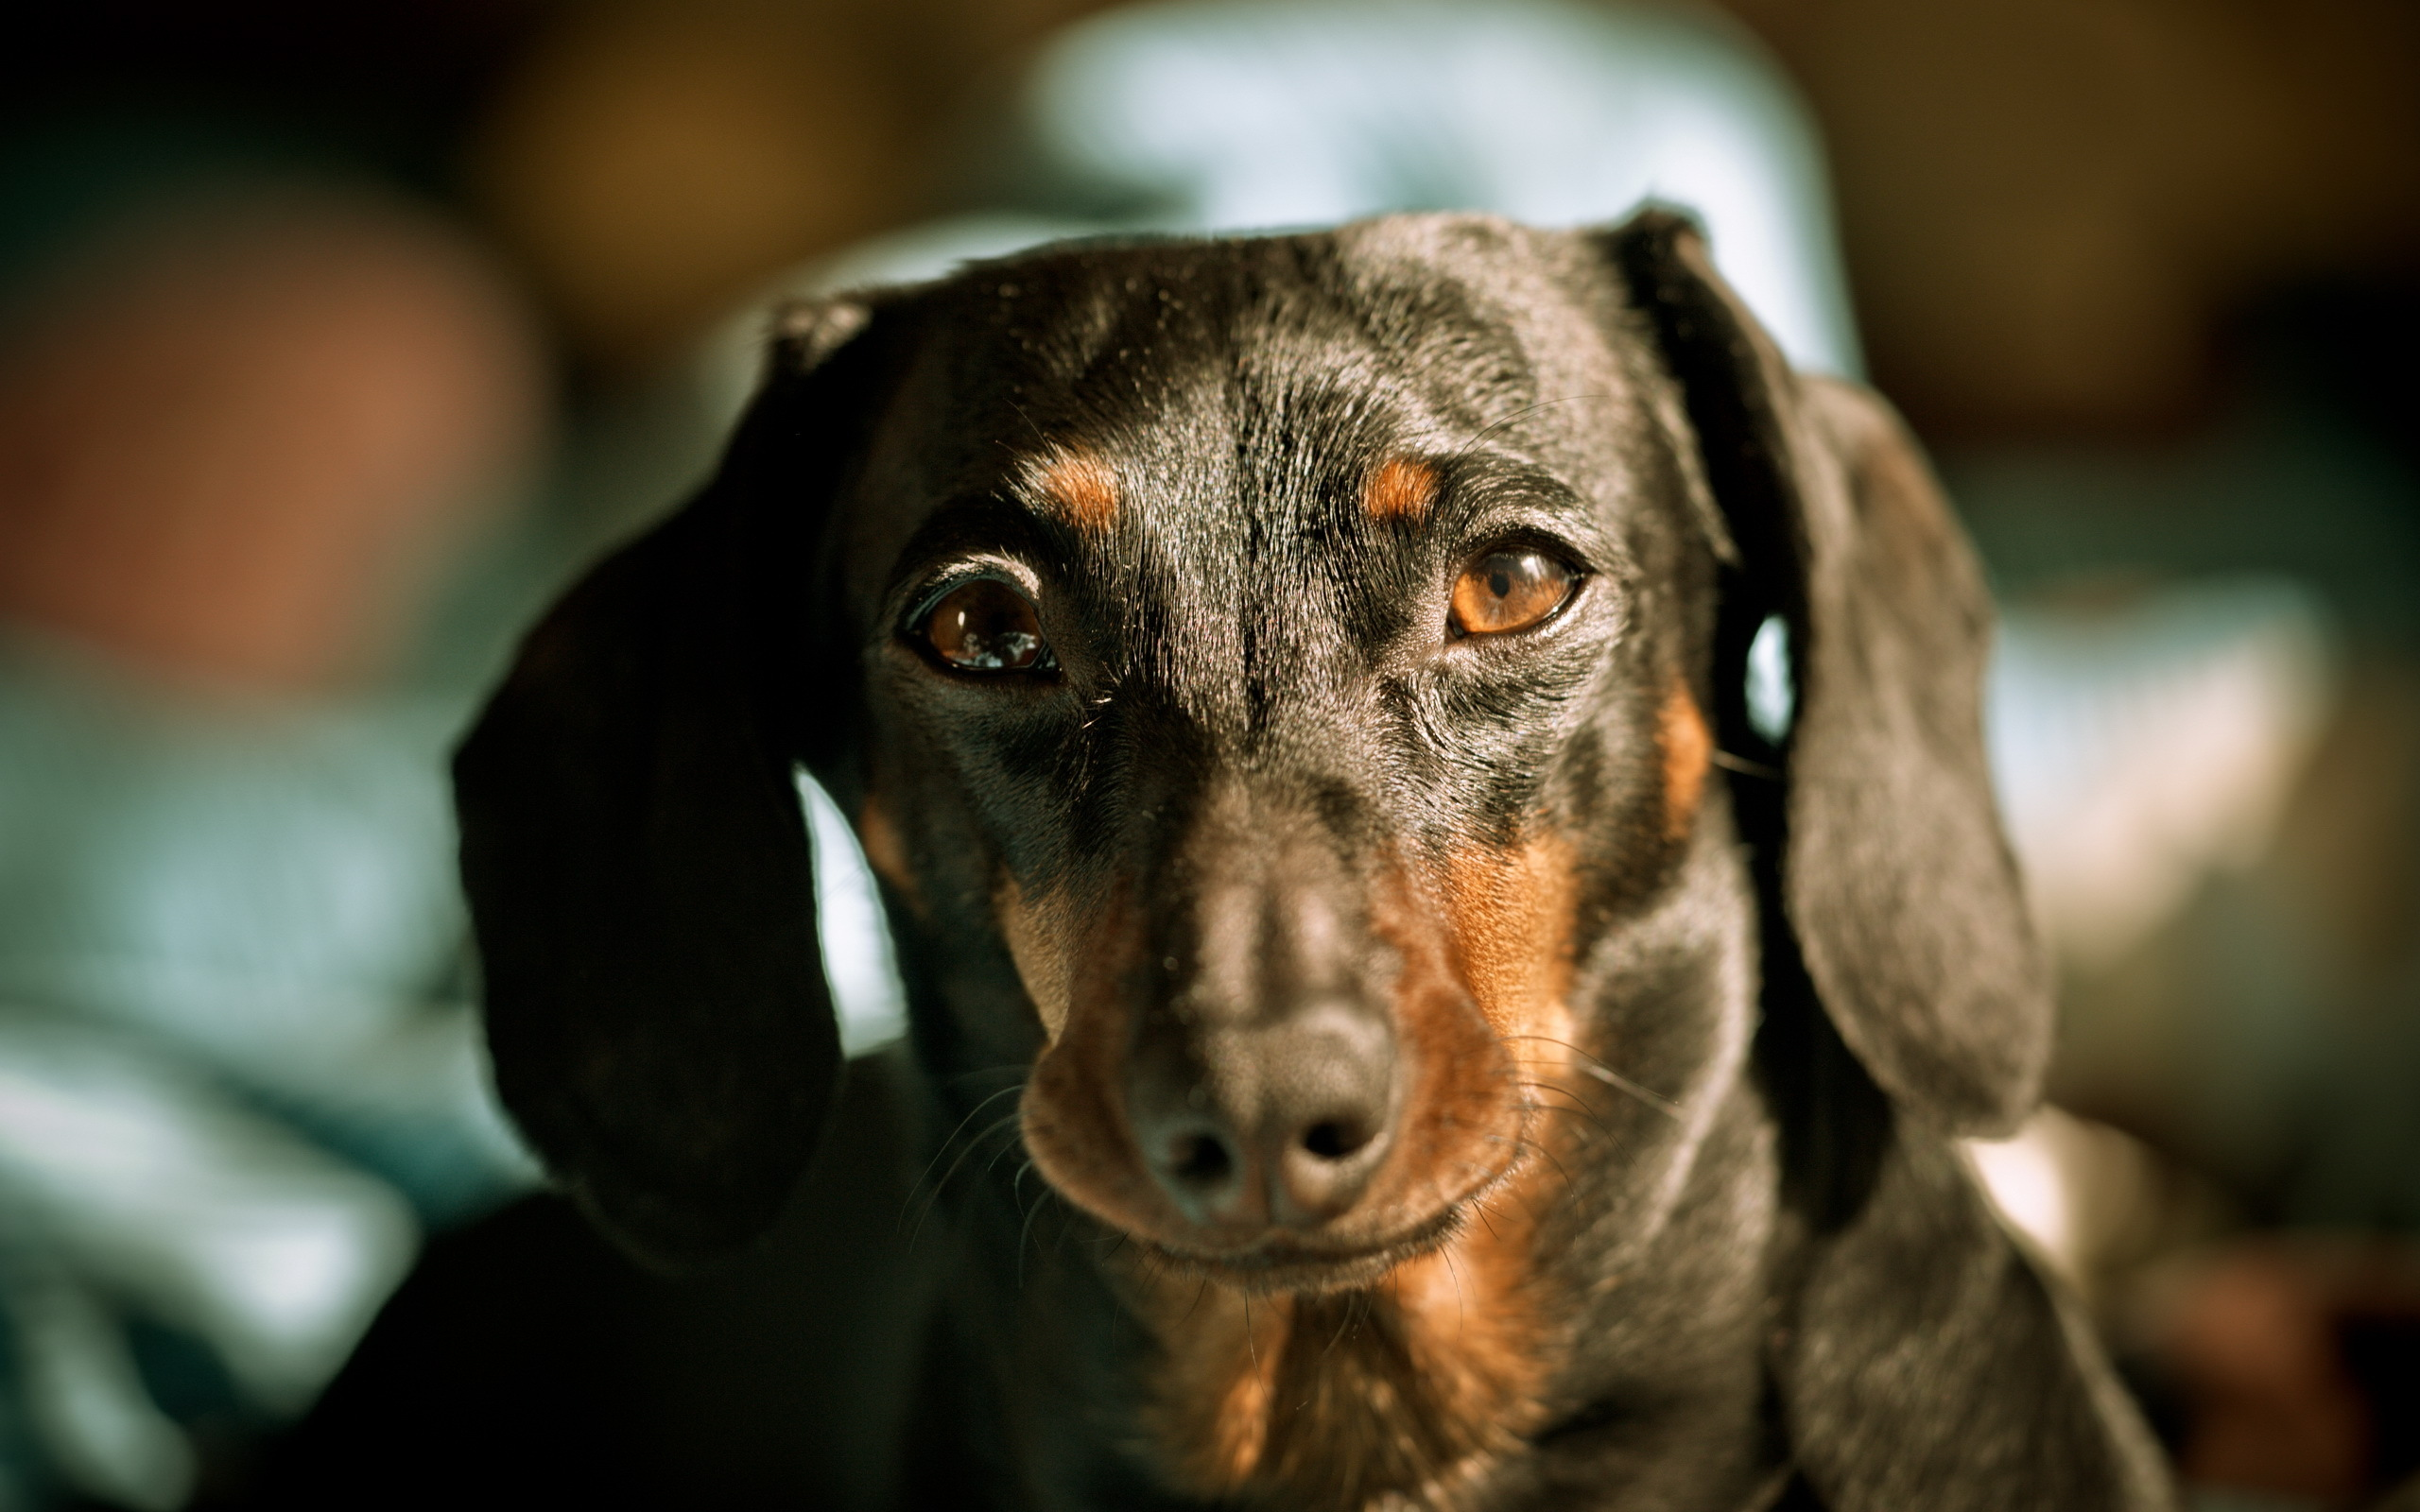 Iphone 5 Wallpaper Cute Pinterest Dachshund Full Hd Wallpaper And Background Image